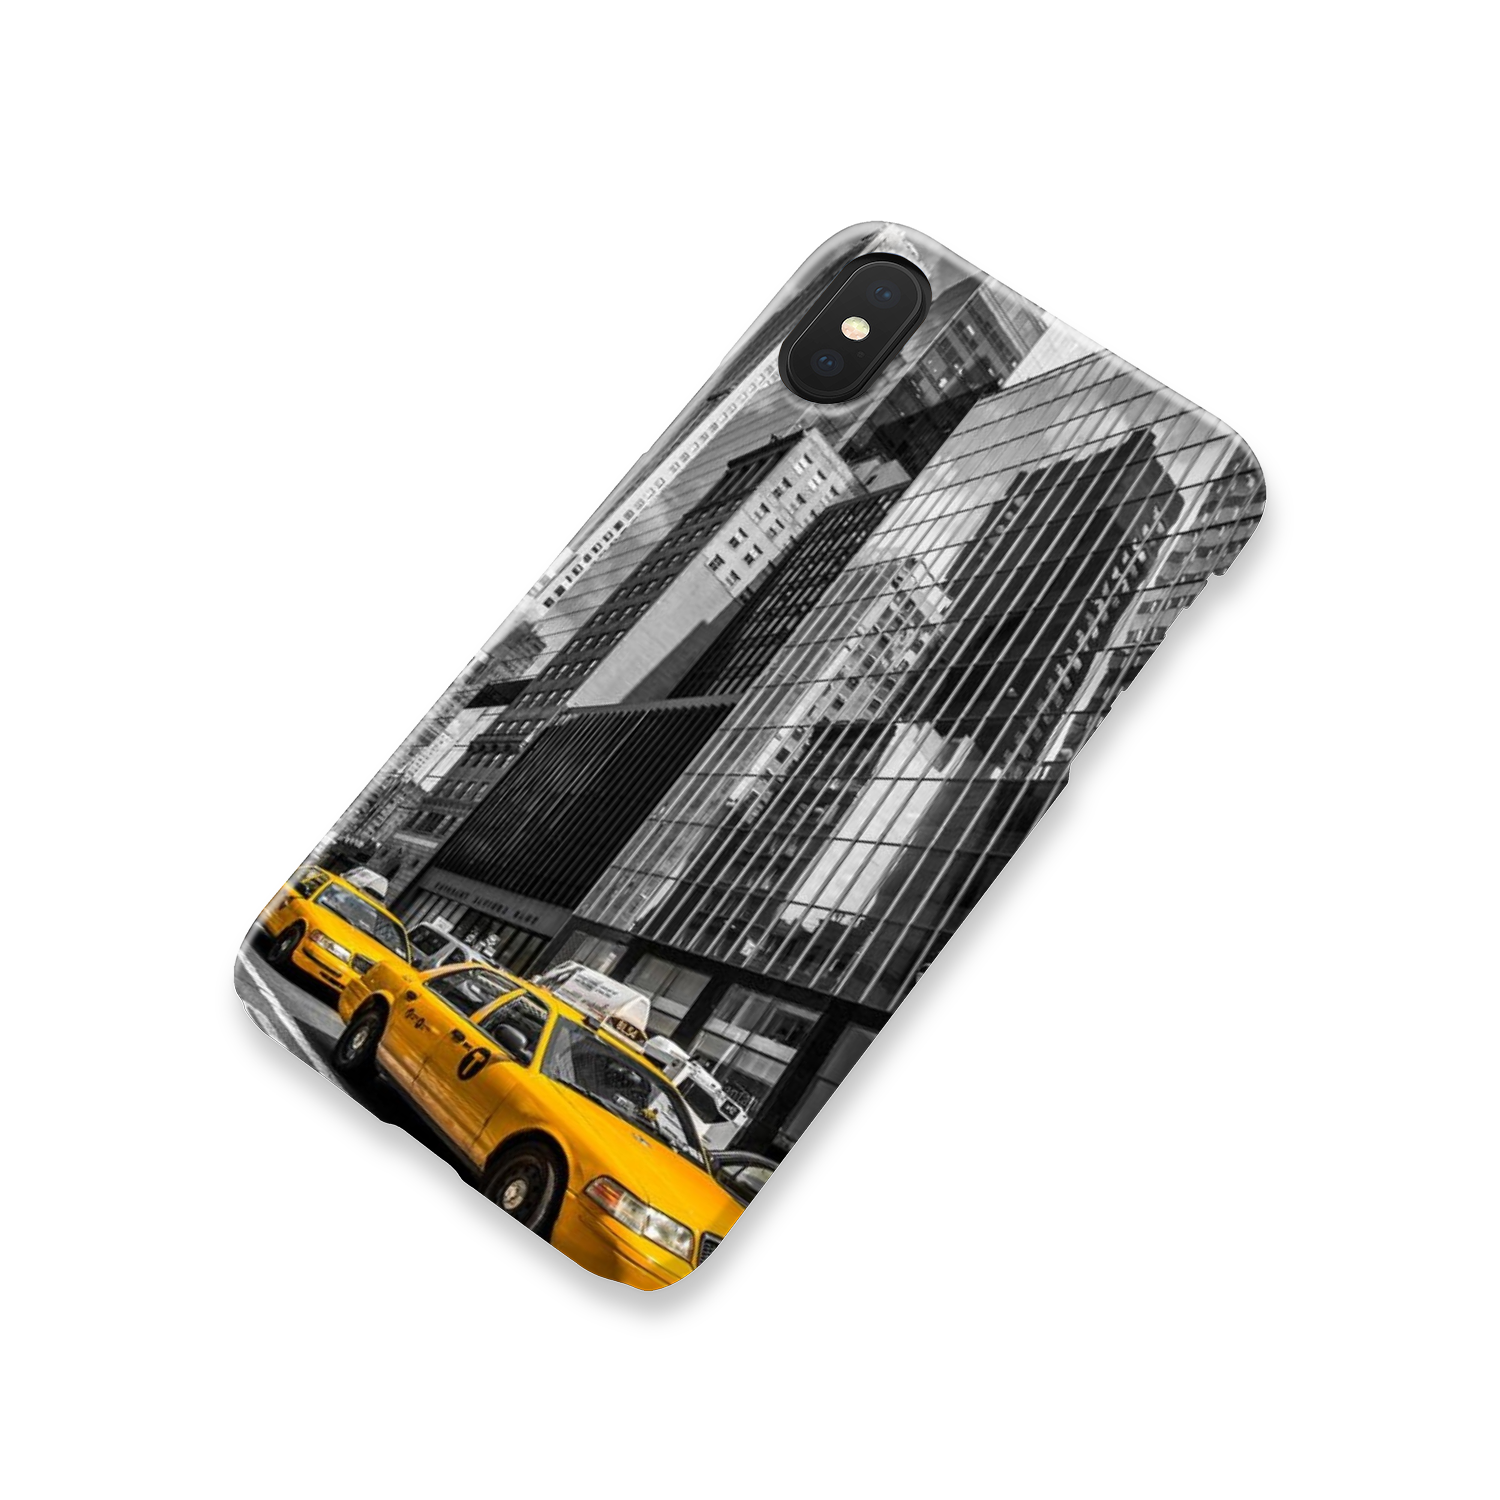 NYC Taxi Cab - Style Loft Cases